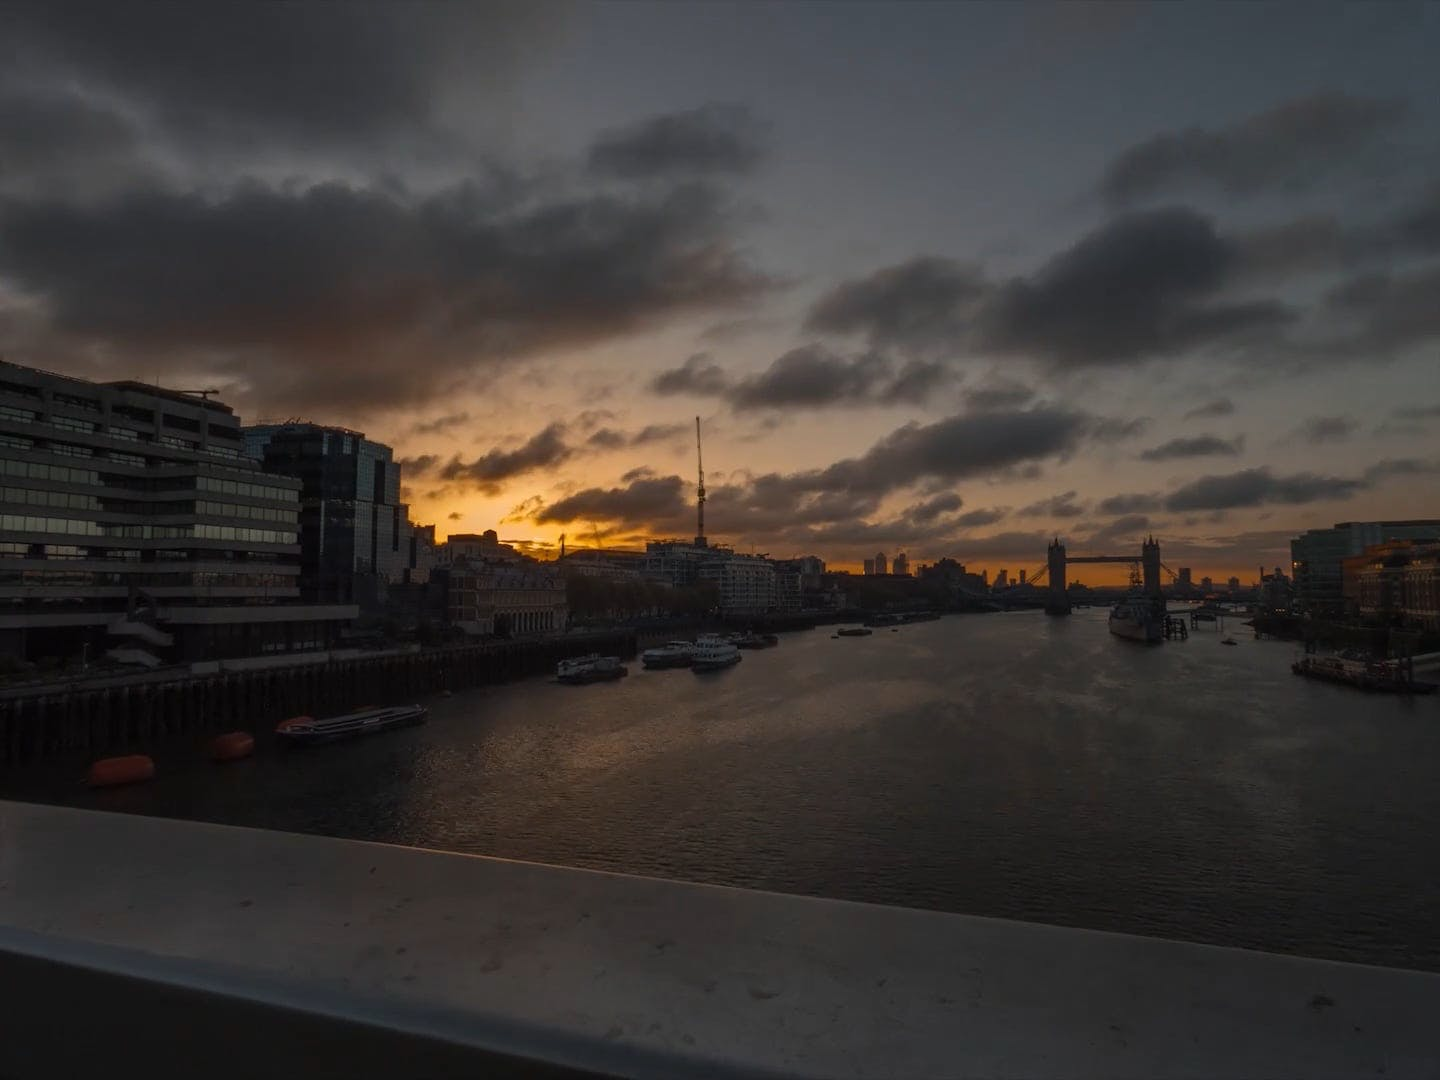 Time Lapse Footage Of Sunset And London Bridge